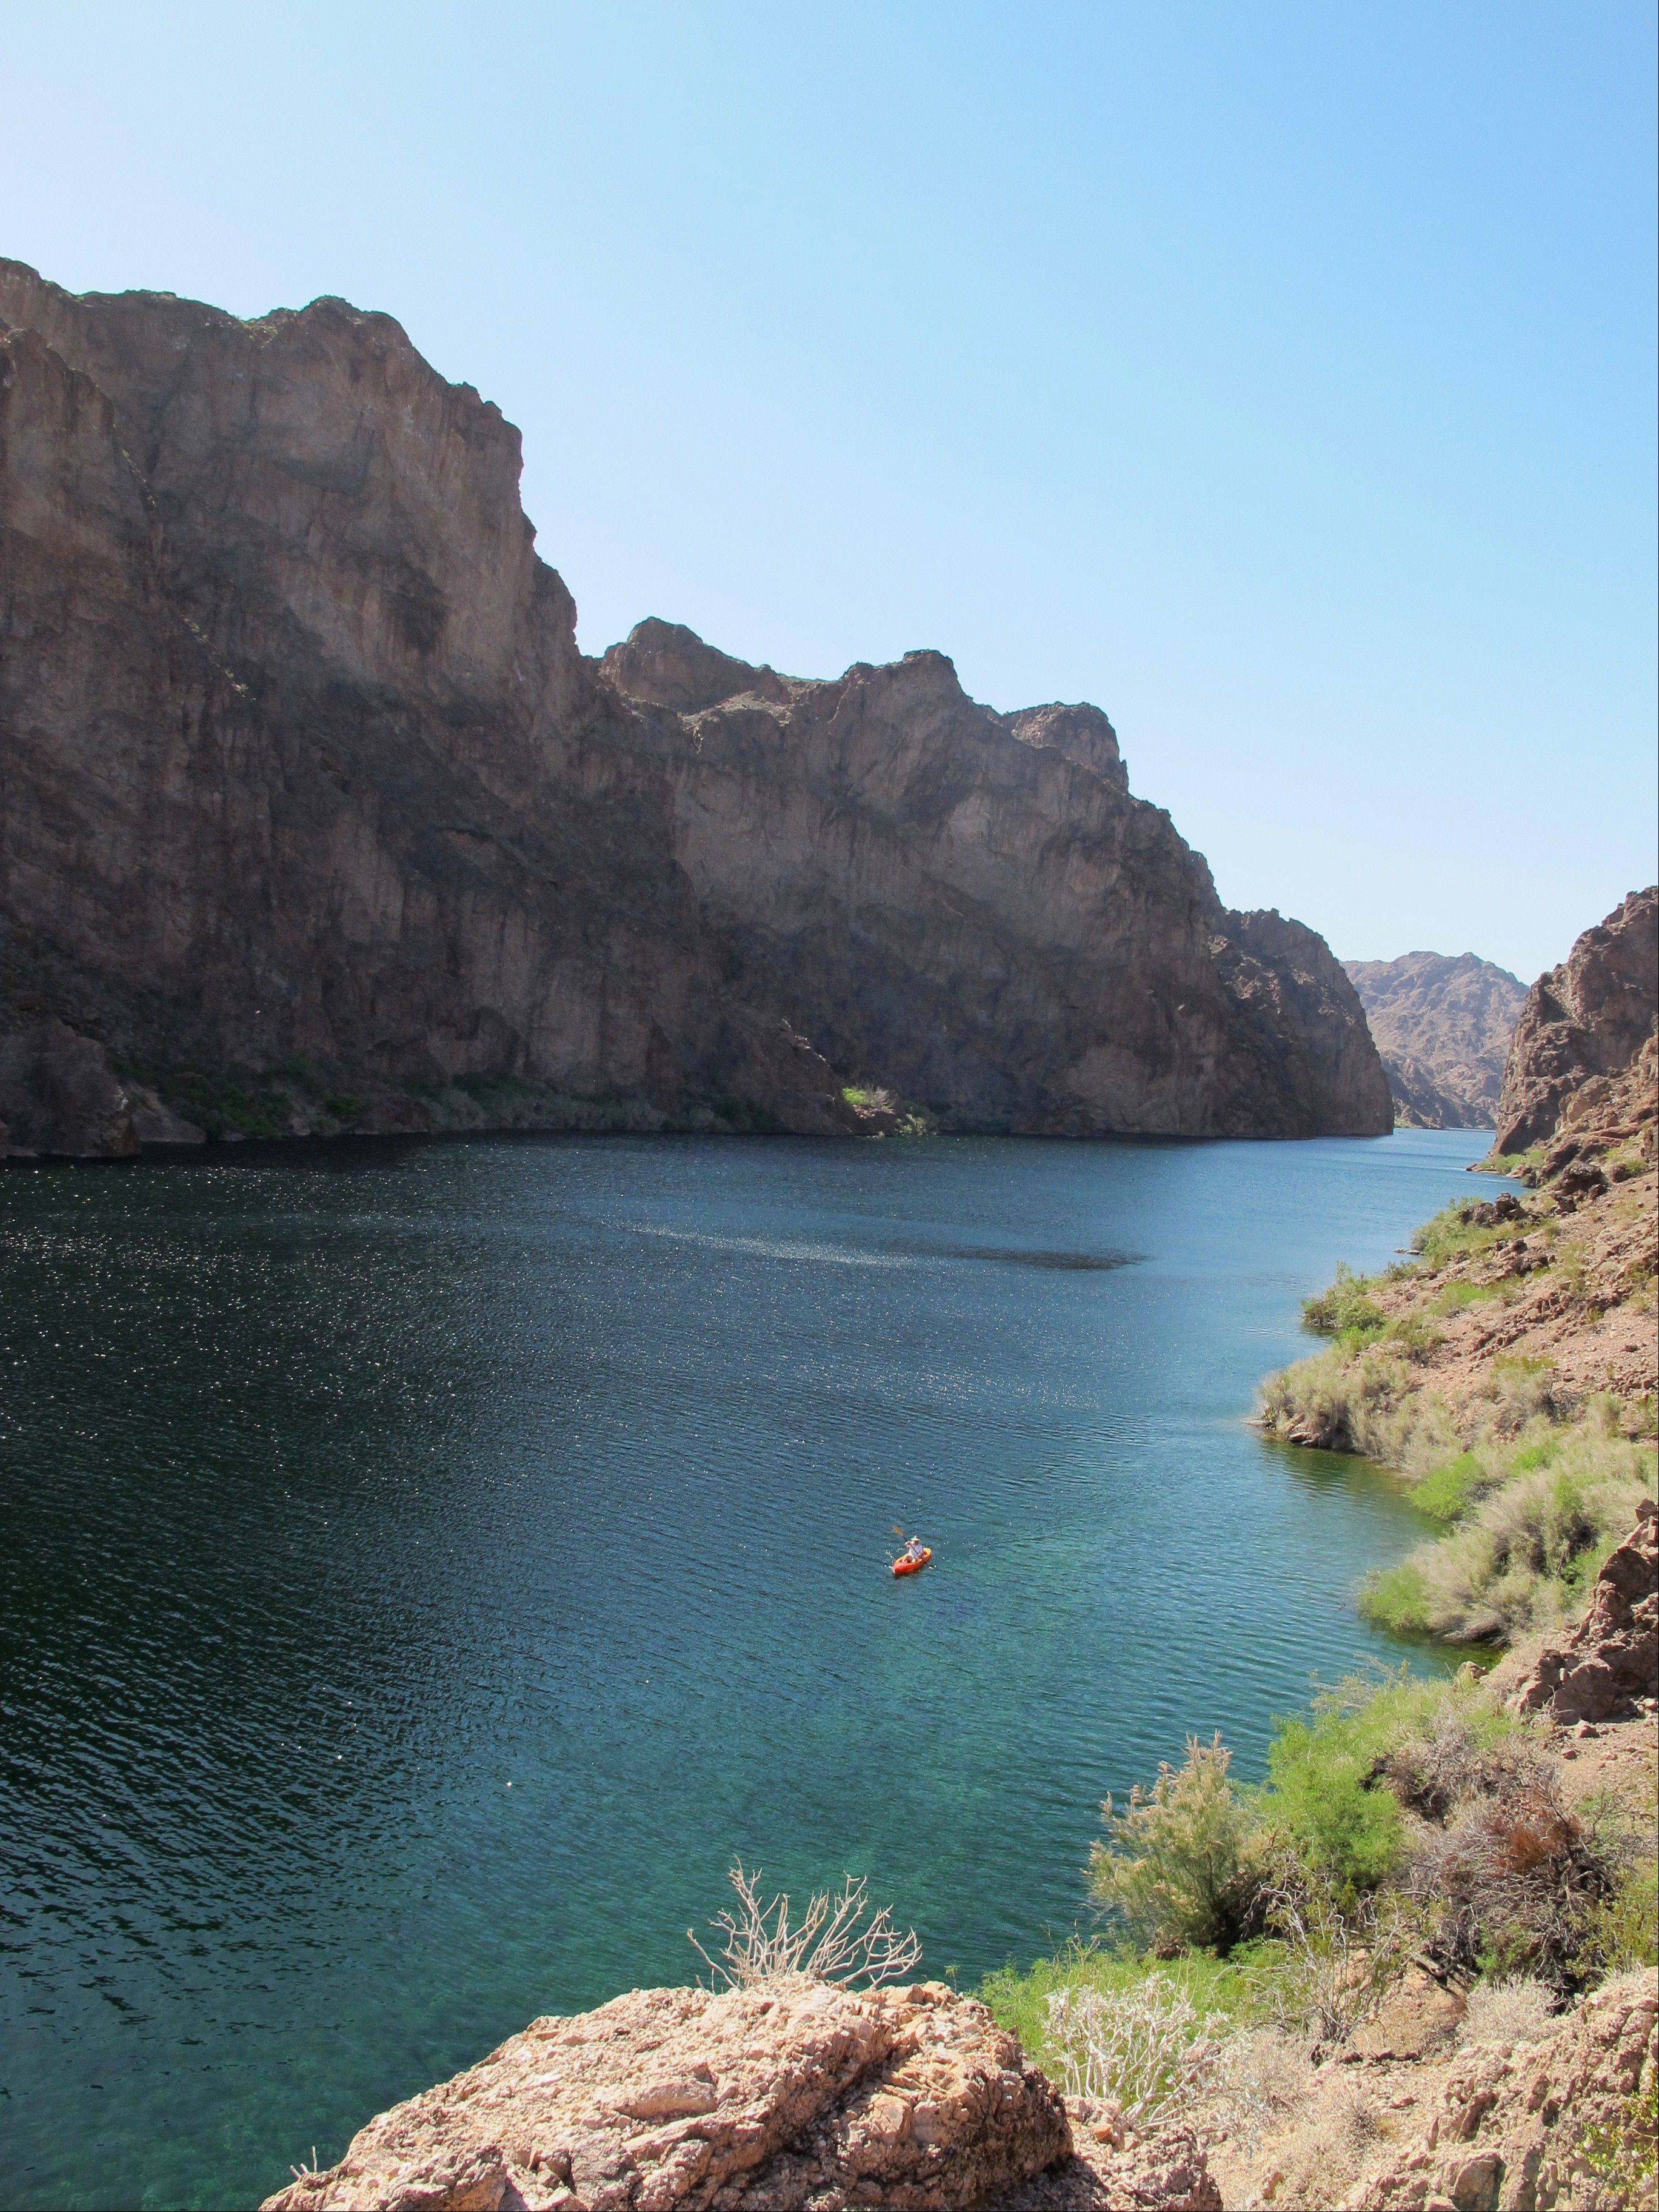 A kayak in the Black Canyon on the Arizona side of the Colorado River.